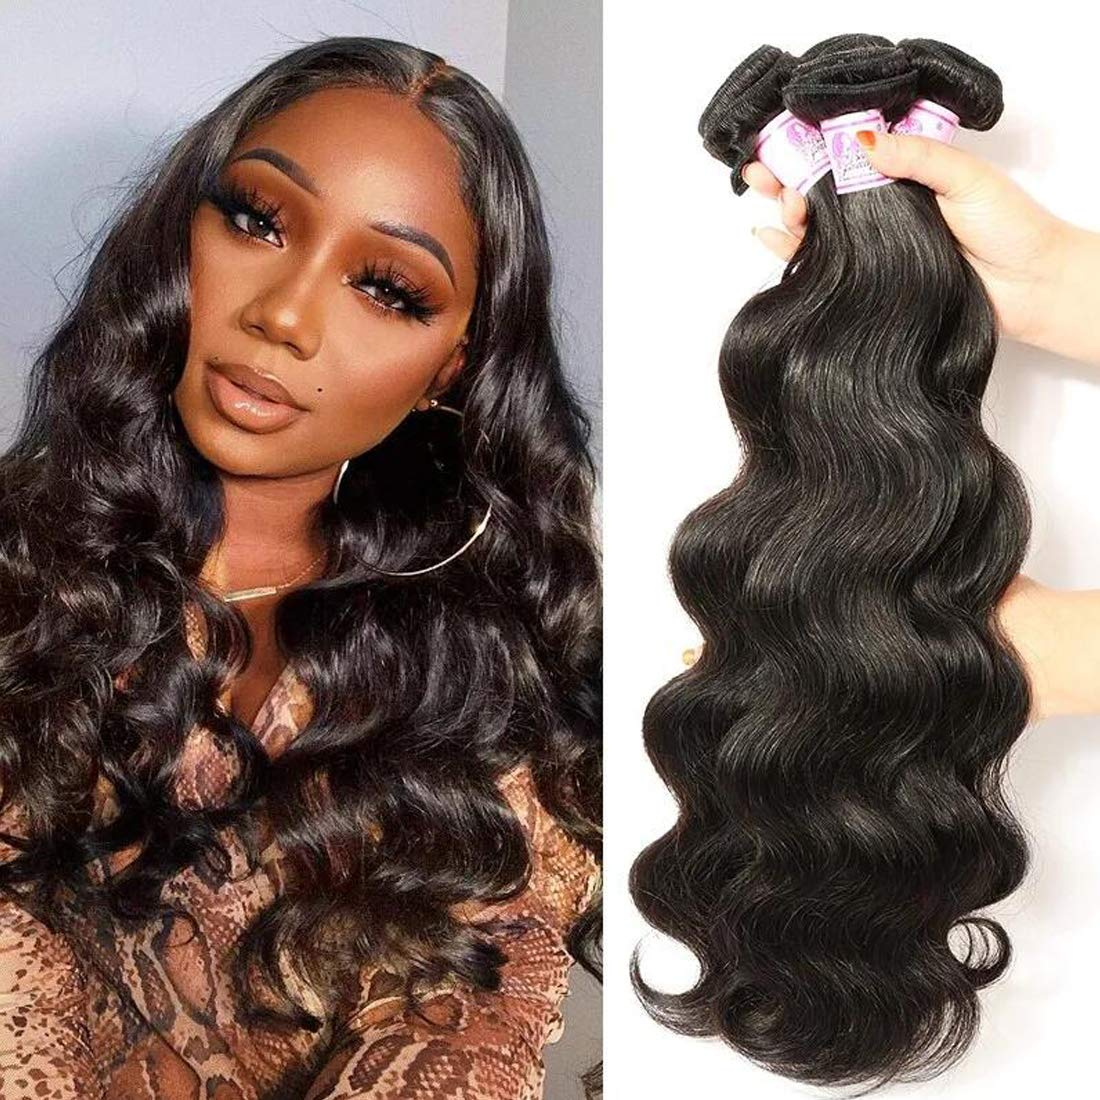 Beauty Forever Hair Brazilian Virgin Wave ! Super beauty product restock quality top! Limited price Bund Weave 3 Body